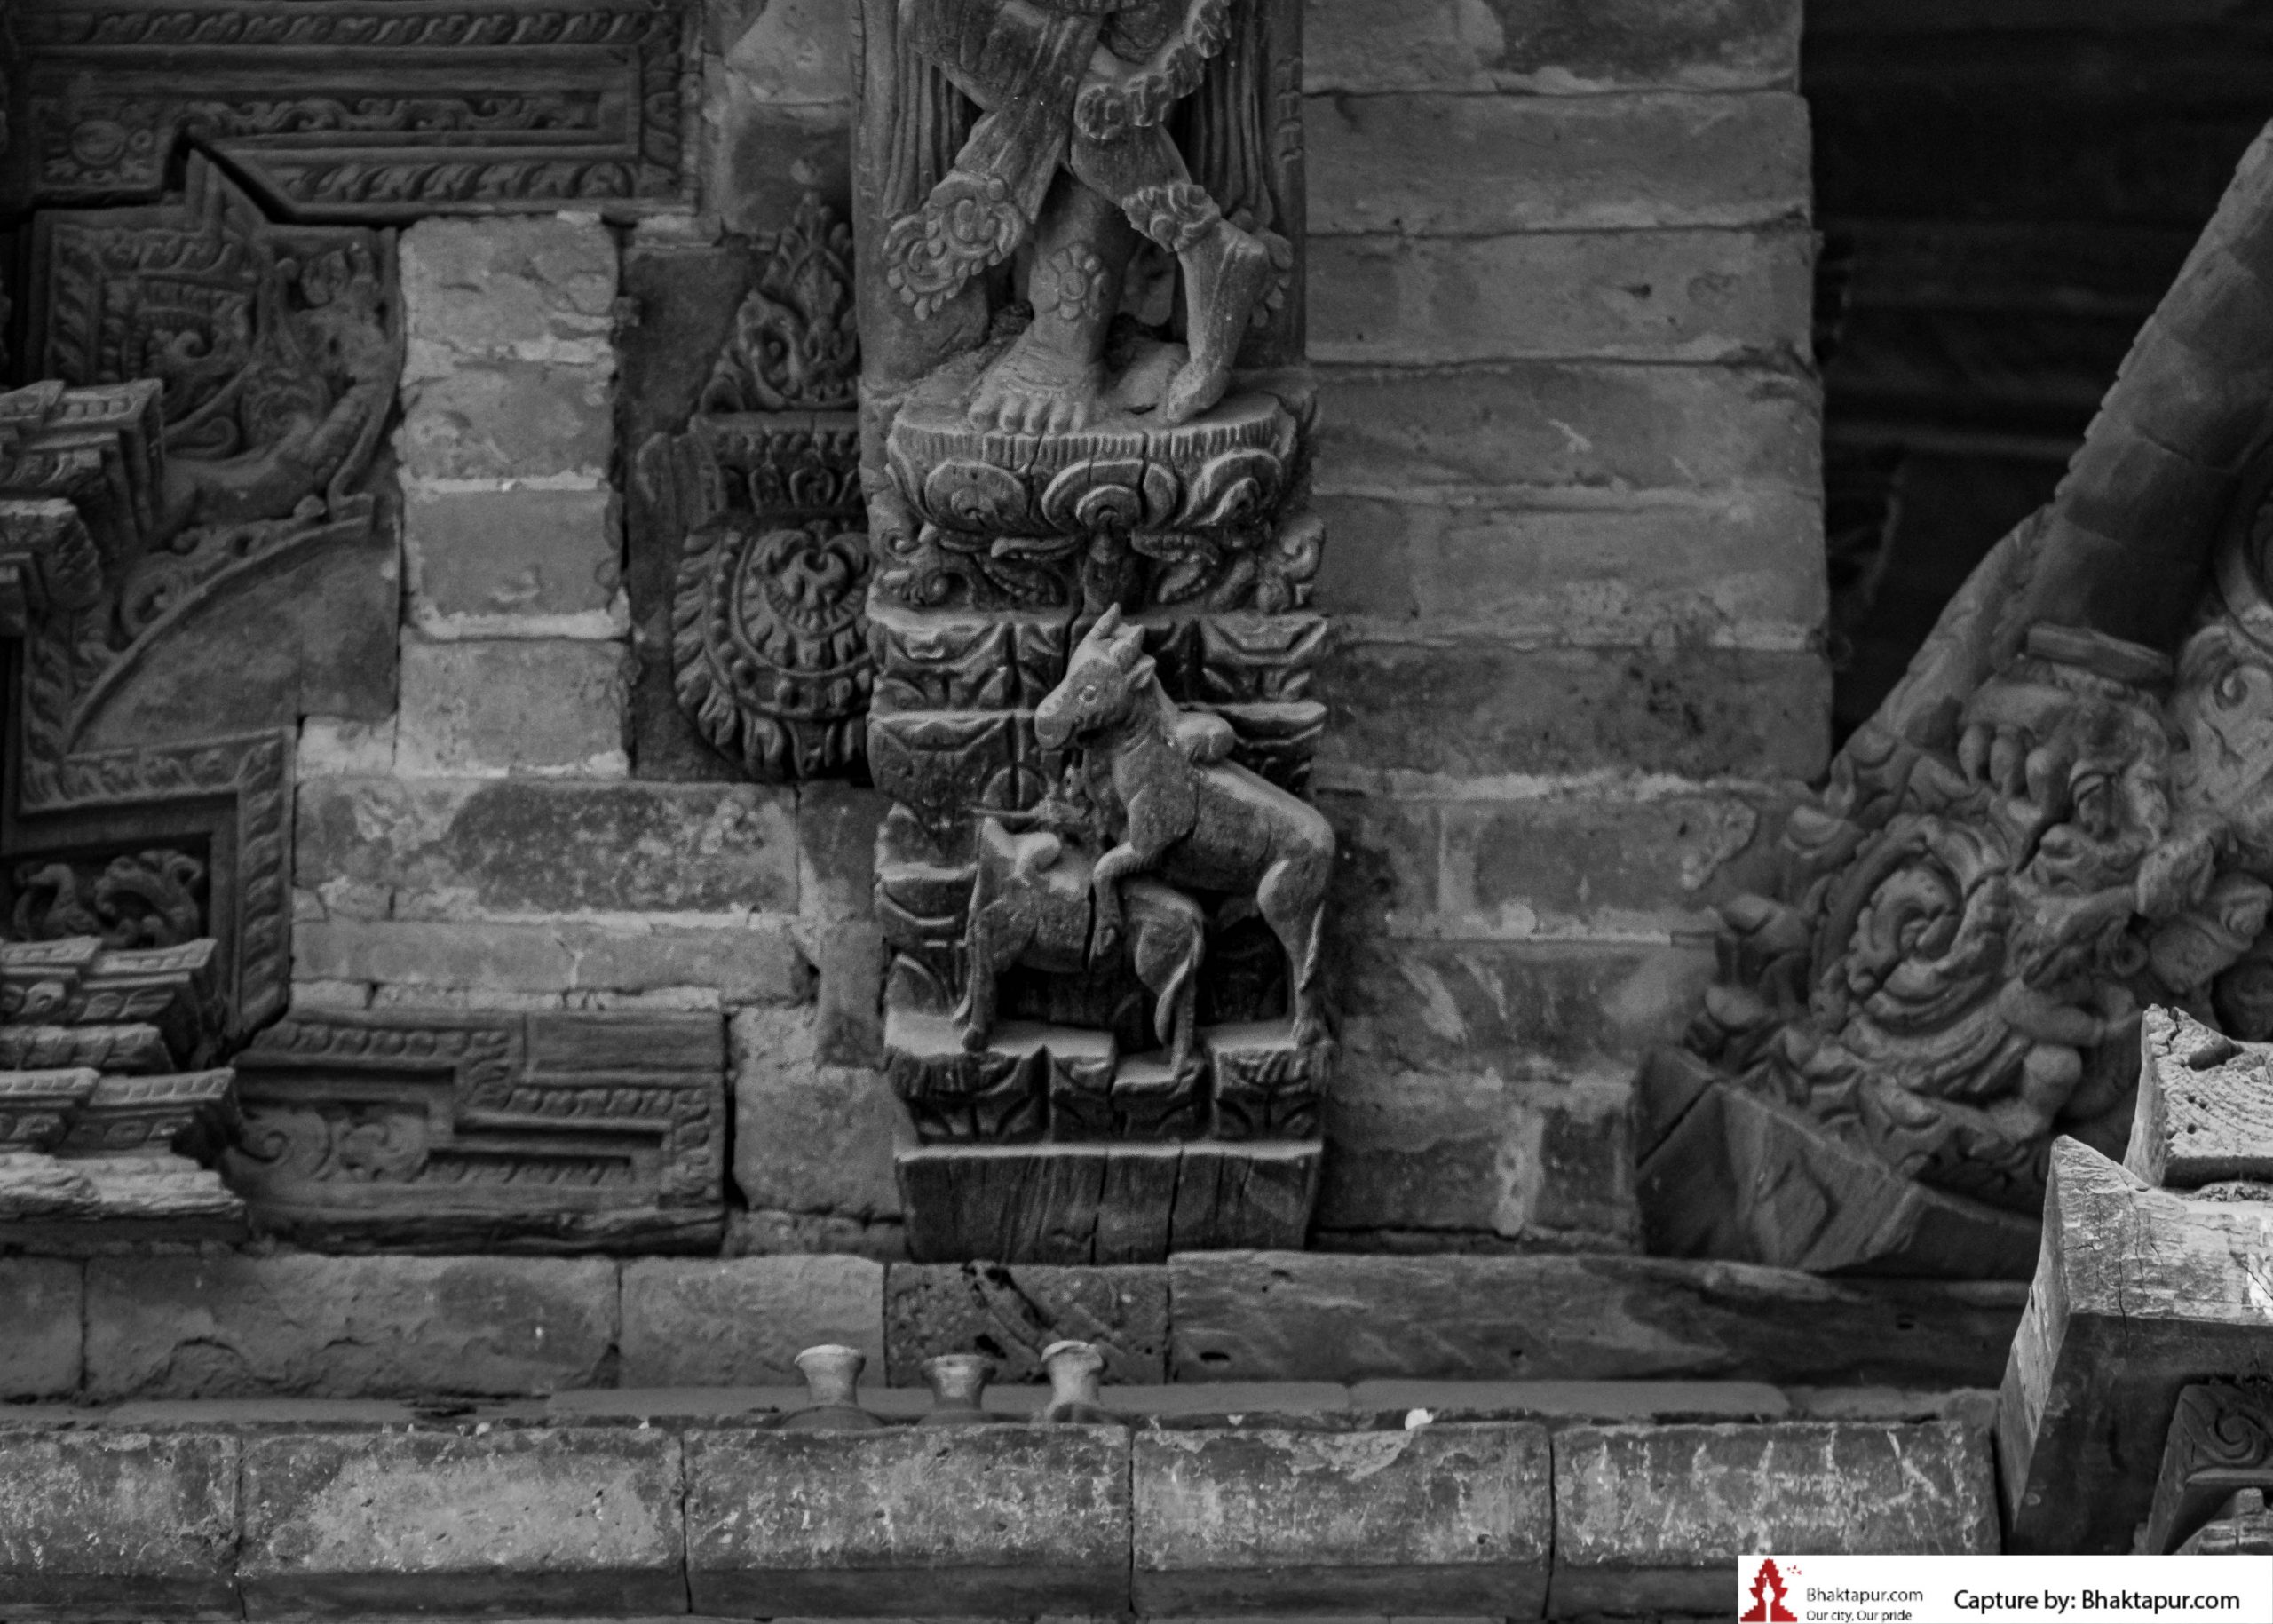 https://www.bhaktapur.com/wp-content/uploads/2021/08/erotic-carving-117-of-137-scaled.jpg